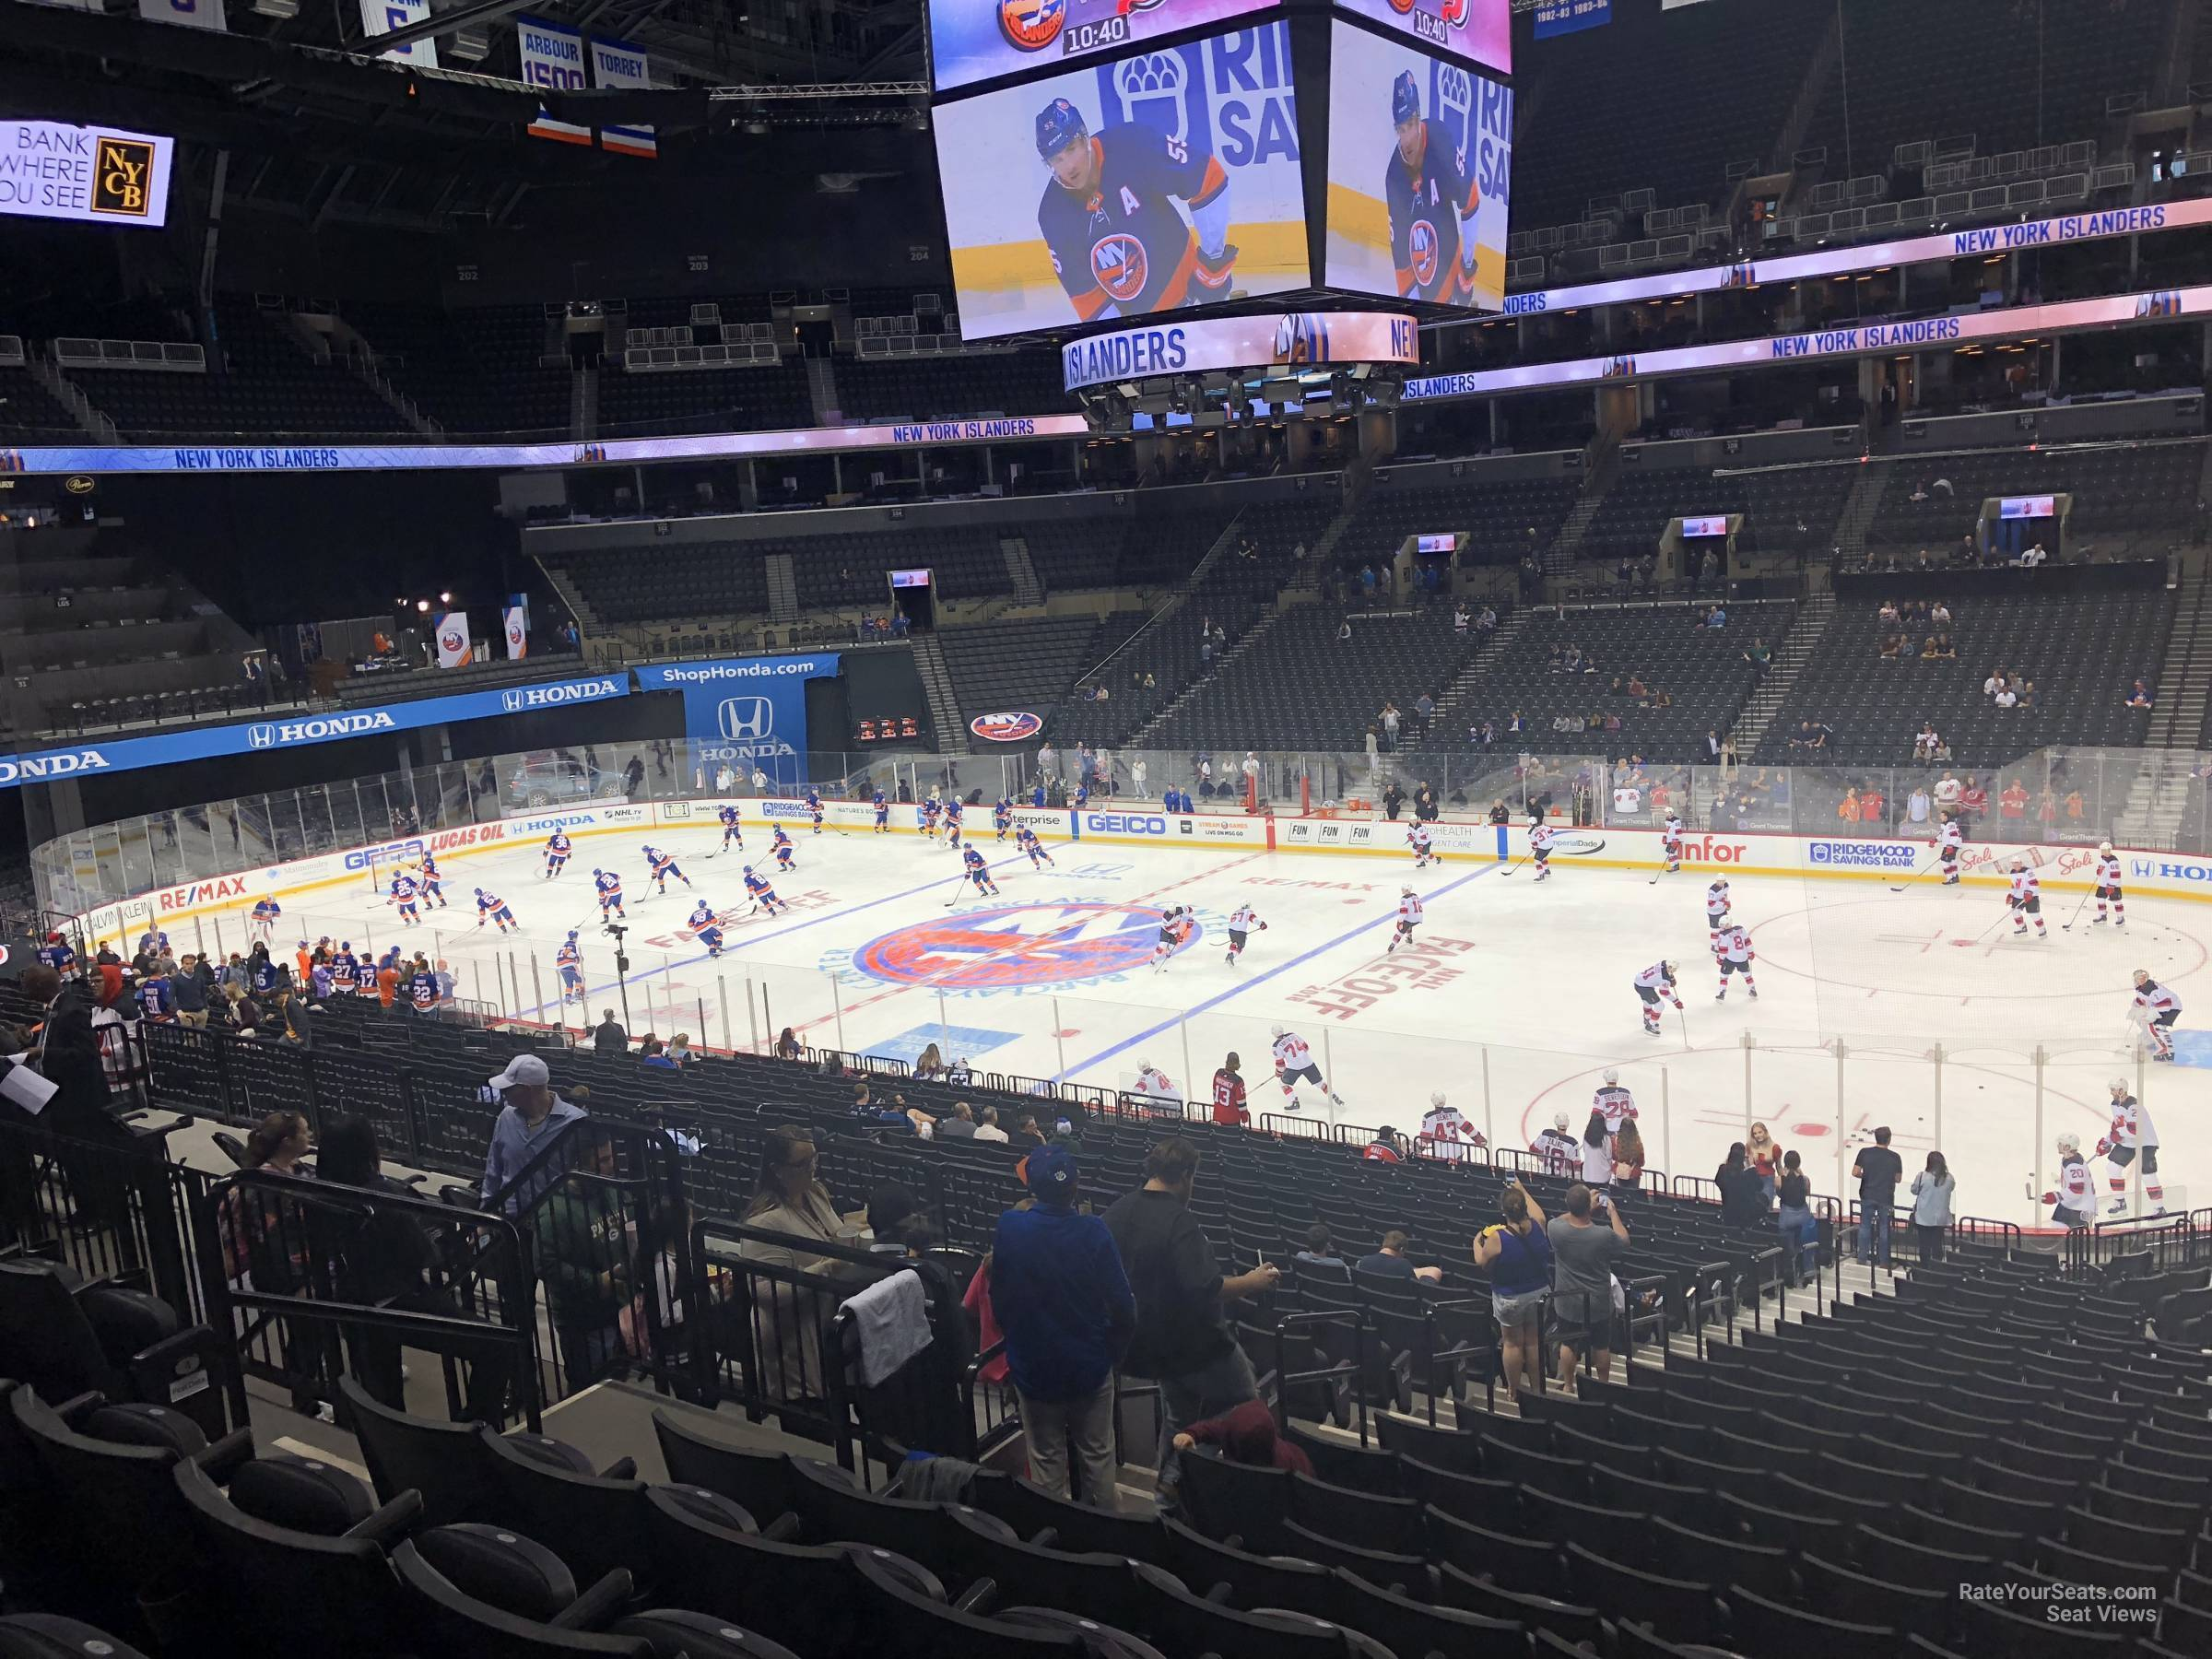 New York Islanders Seat View for Barclays Center Section 122, Row 7